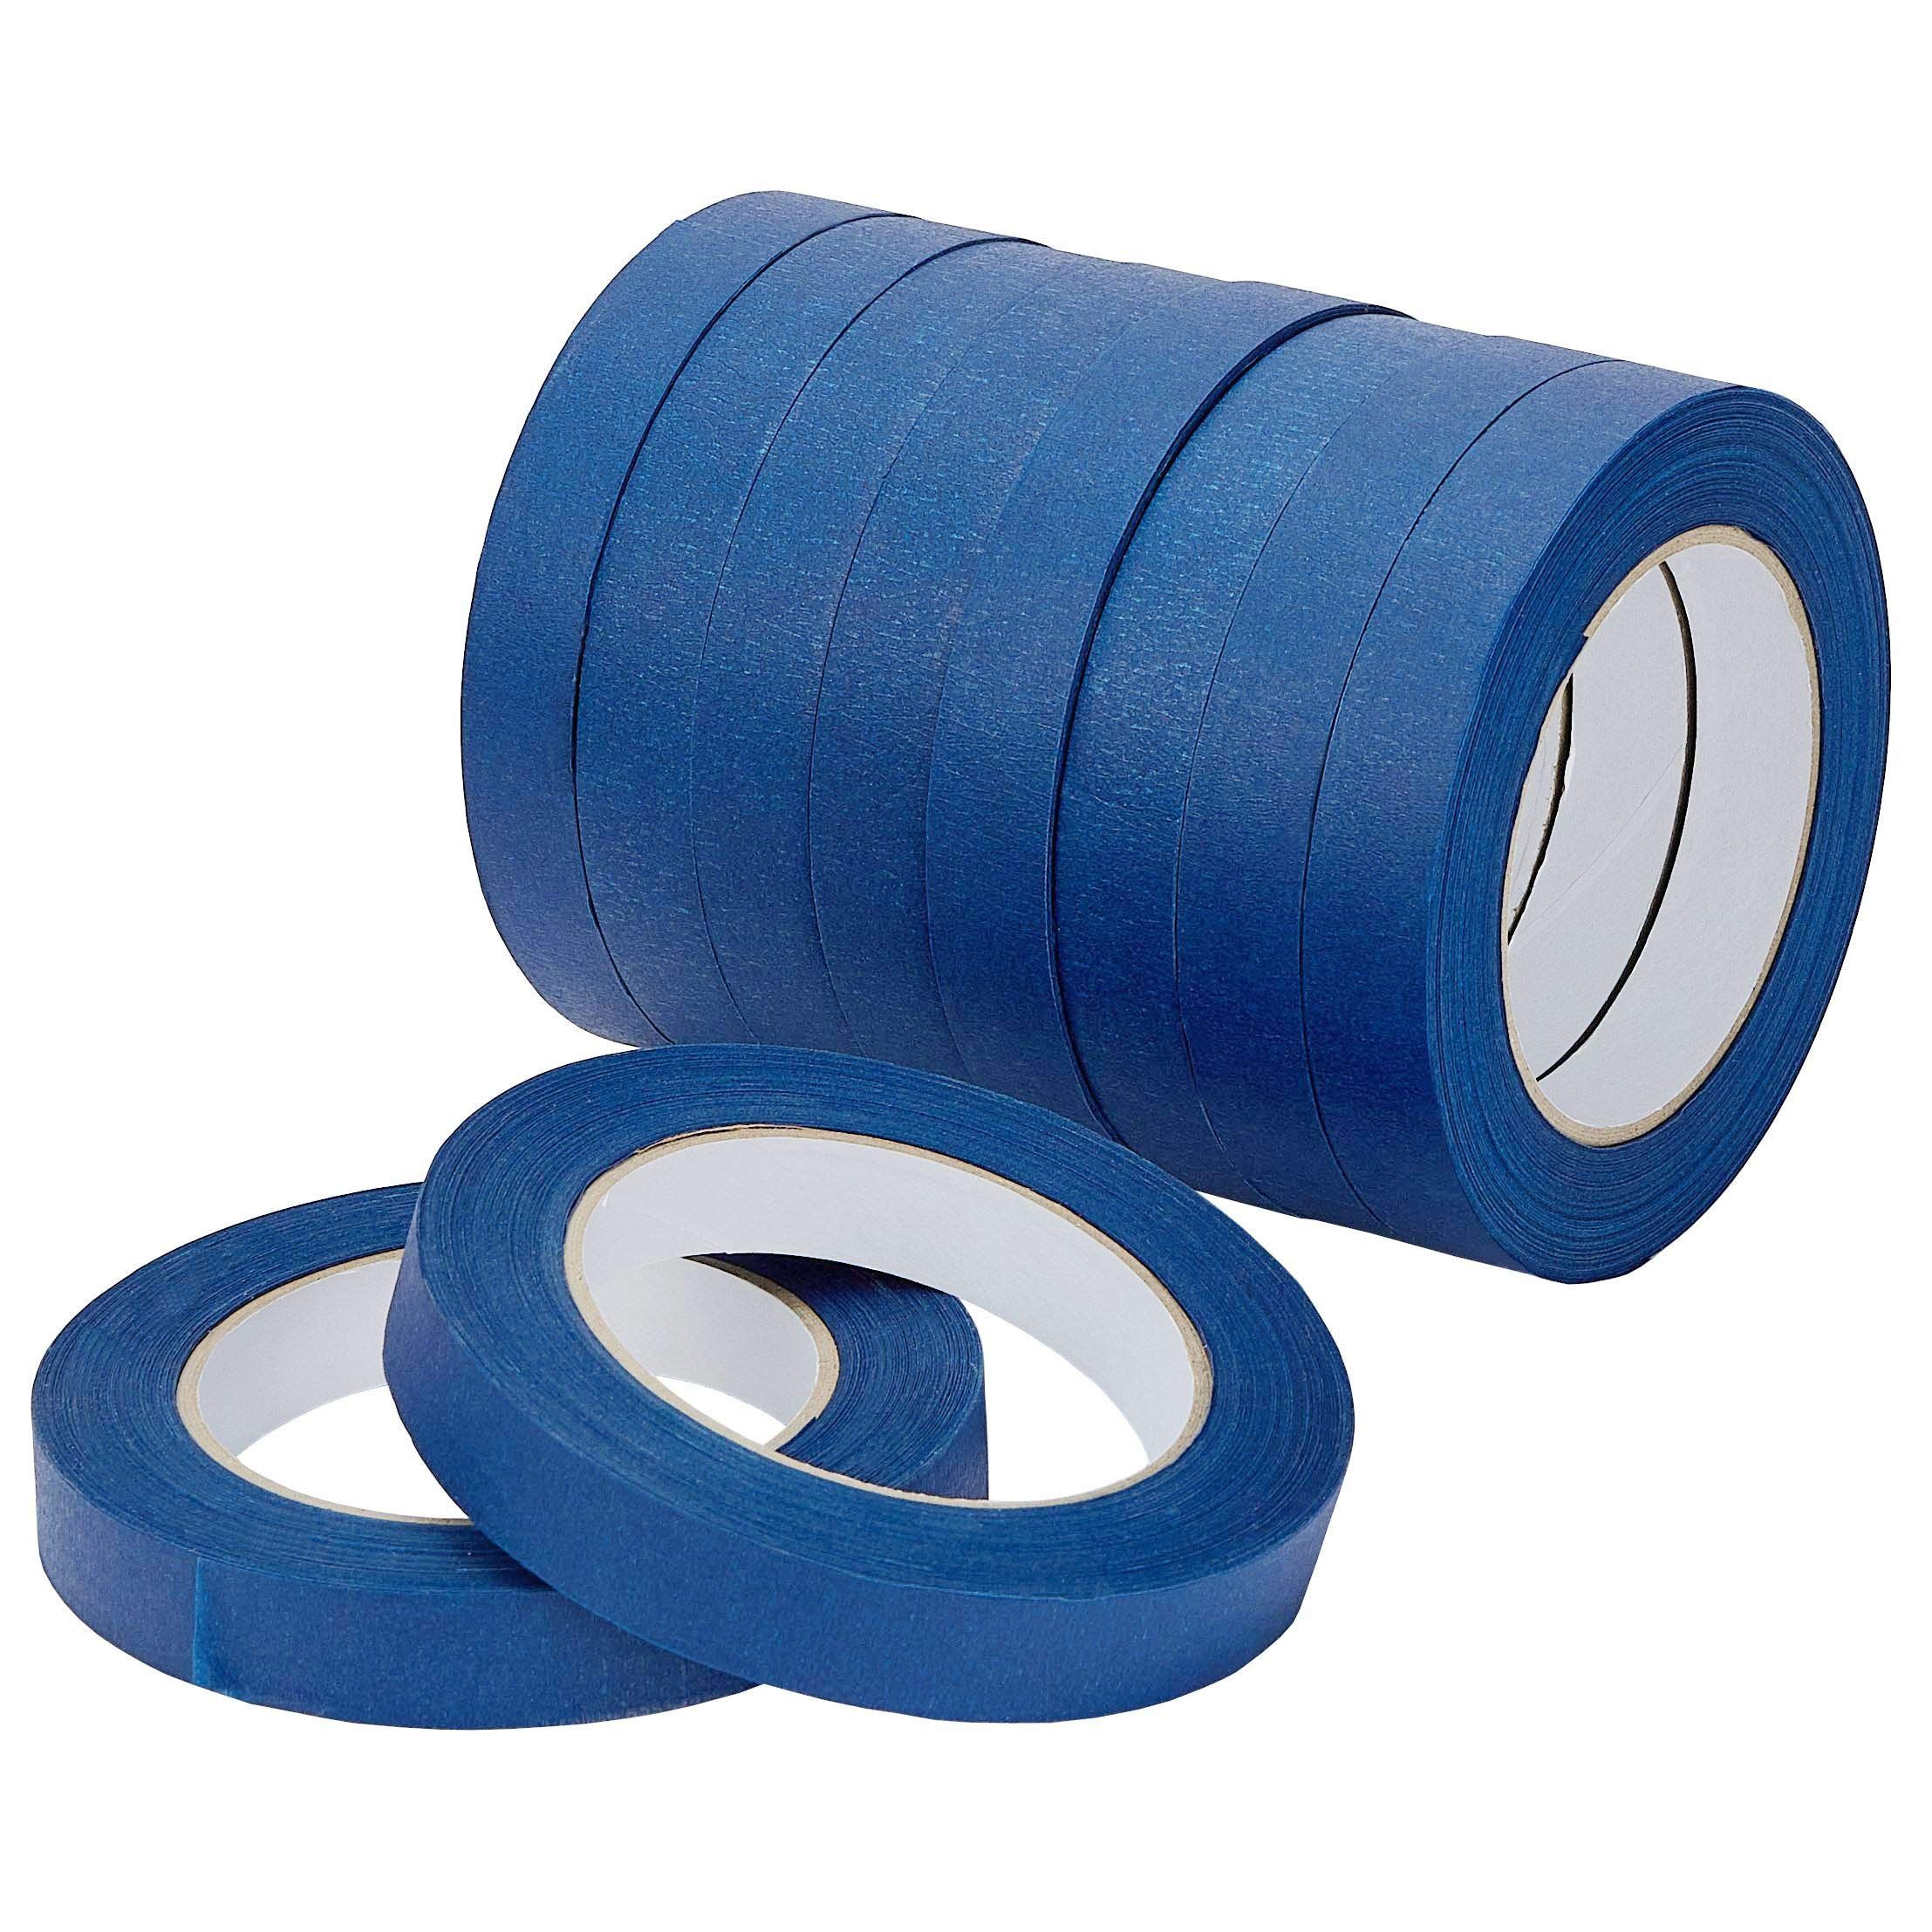 LICHAMP 10-Piece Blue Painters Tape 3/4 inch, Blue Masking Tape Bulk Multi Pack, 0.75 inch x 55 Yards x 10 Rolls (550 Total Yards) by Lichamp